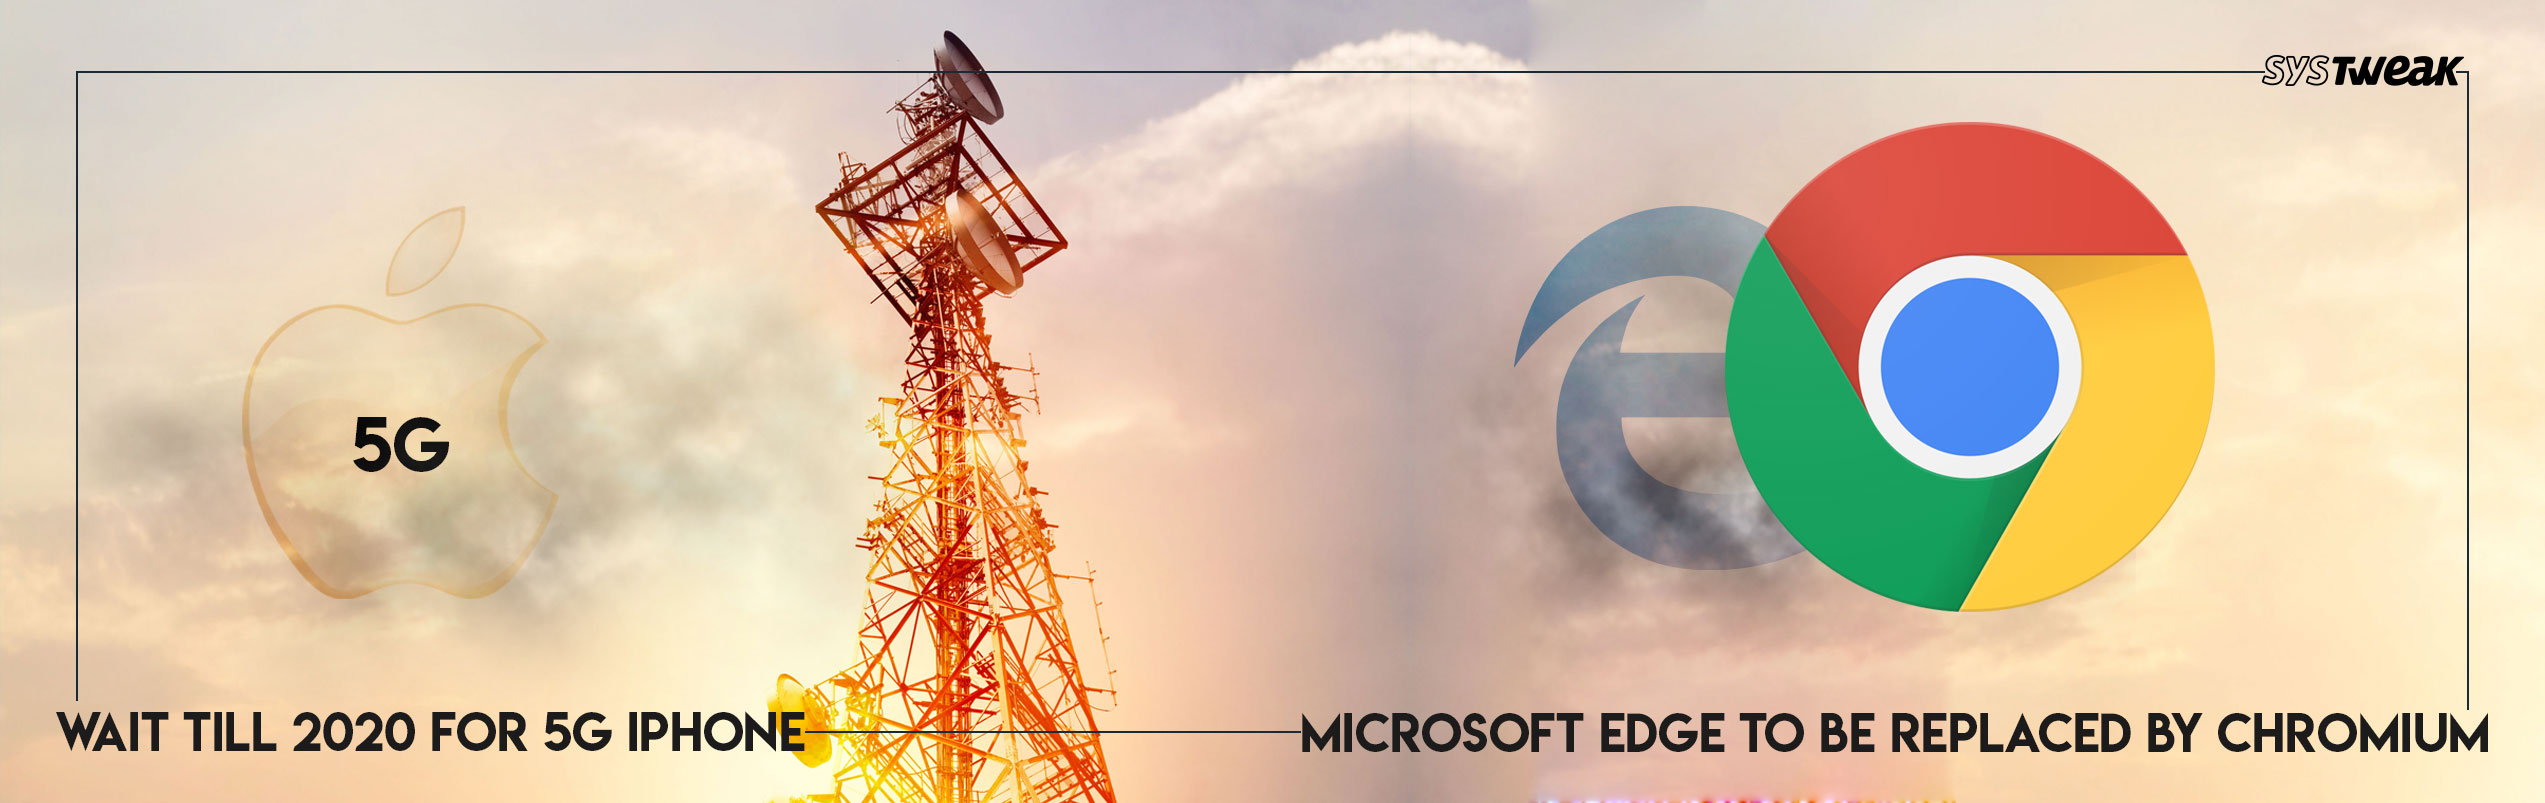 Newsletter: 5G iPhone To Be Released By 2020 And Microsoft Plans To Drop Edge Browser